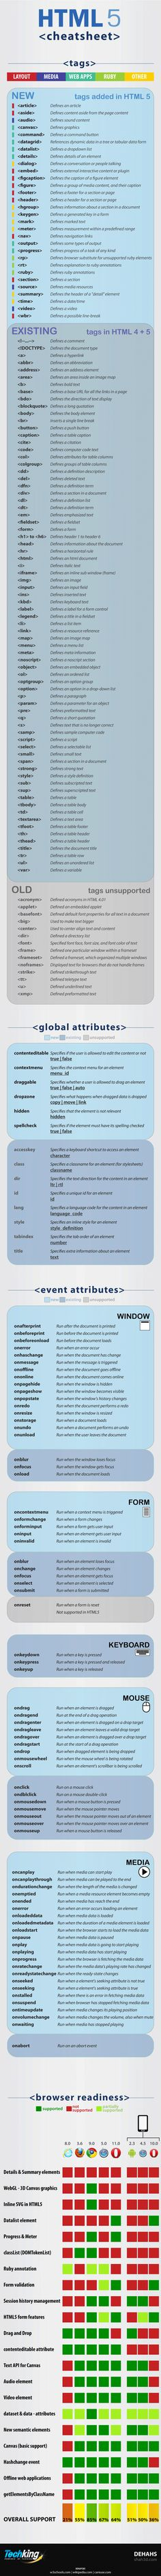 Ultimate HTML5 Cheat Sheet